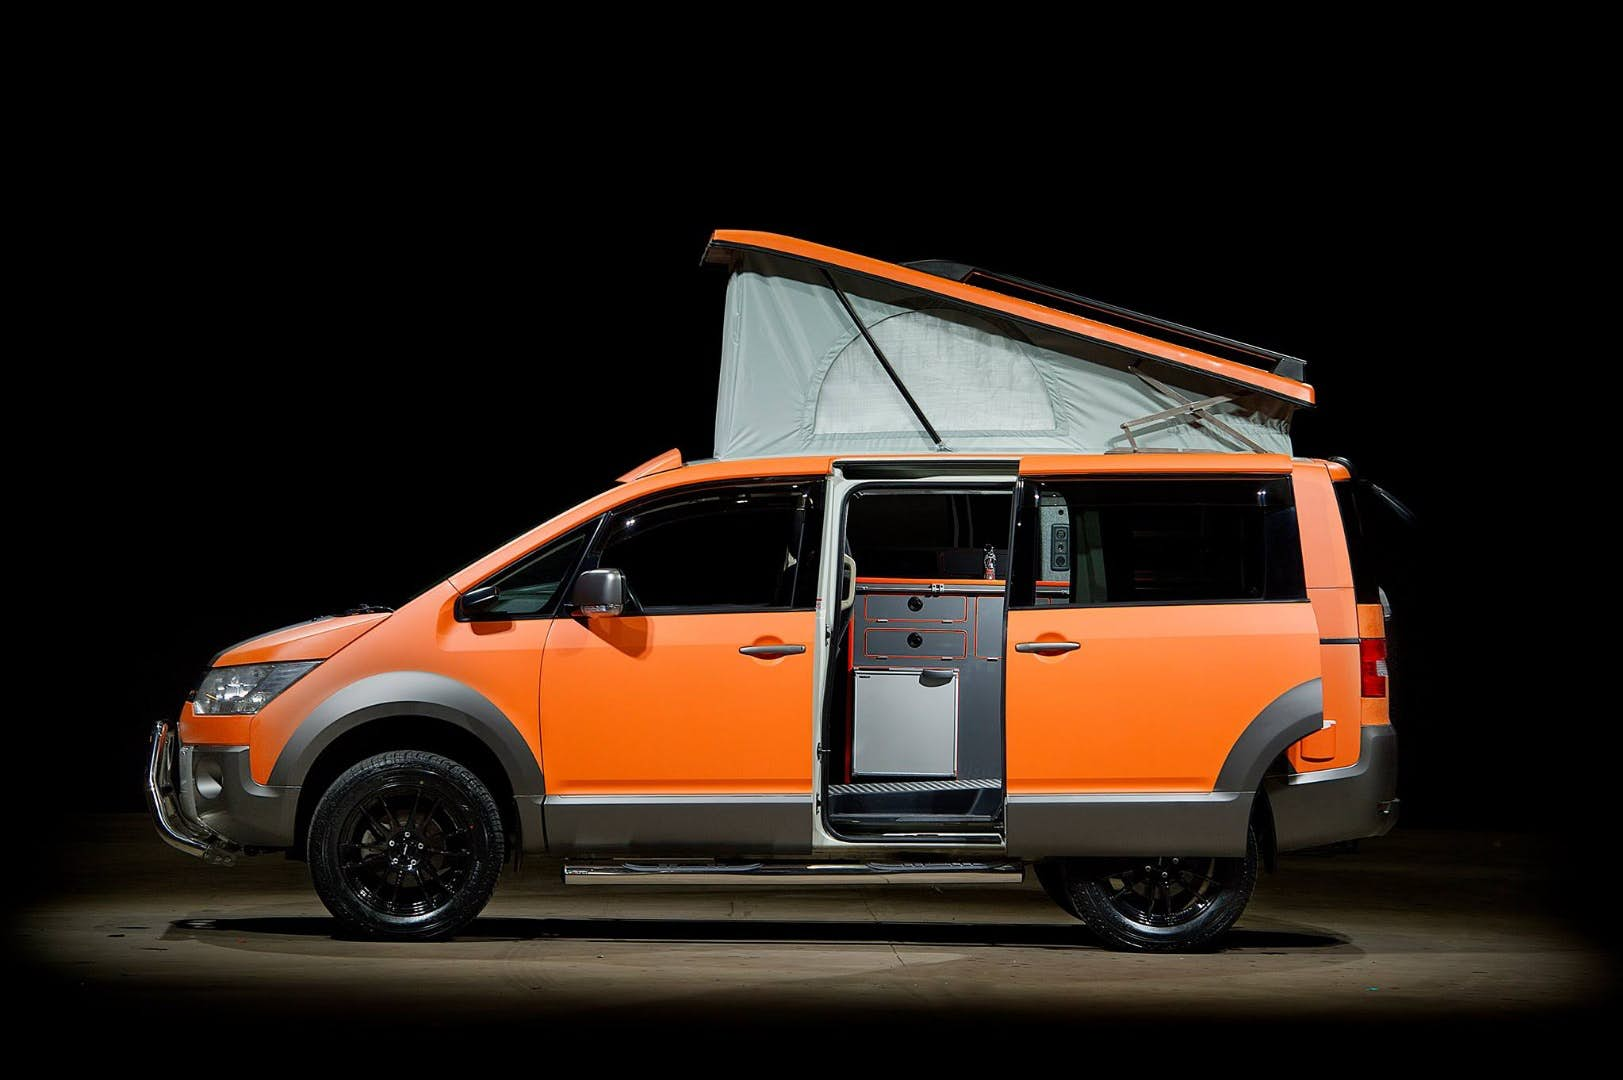 This Mitsubishi Delica 4x4 Camper Conversion Is A Thing Of Beauty